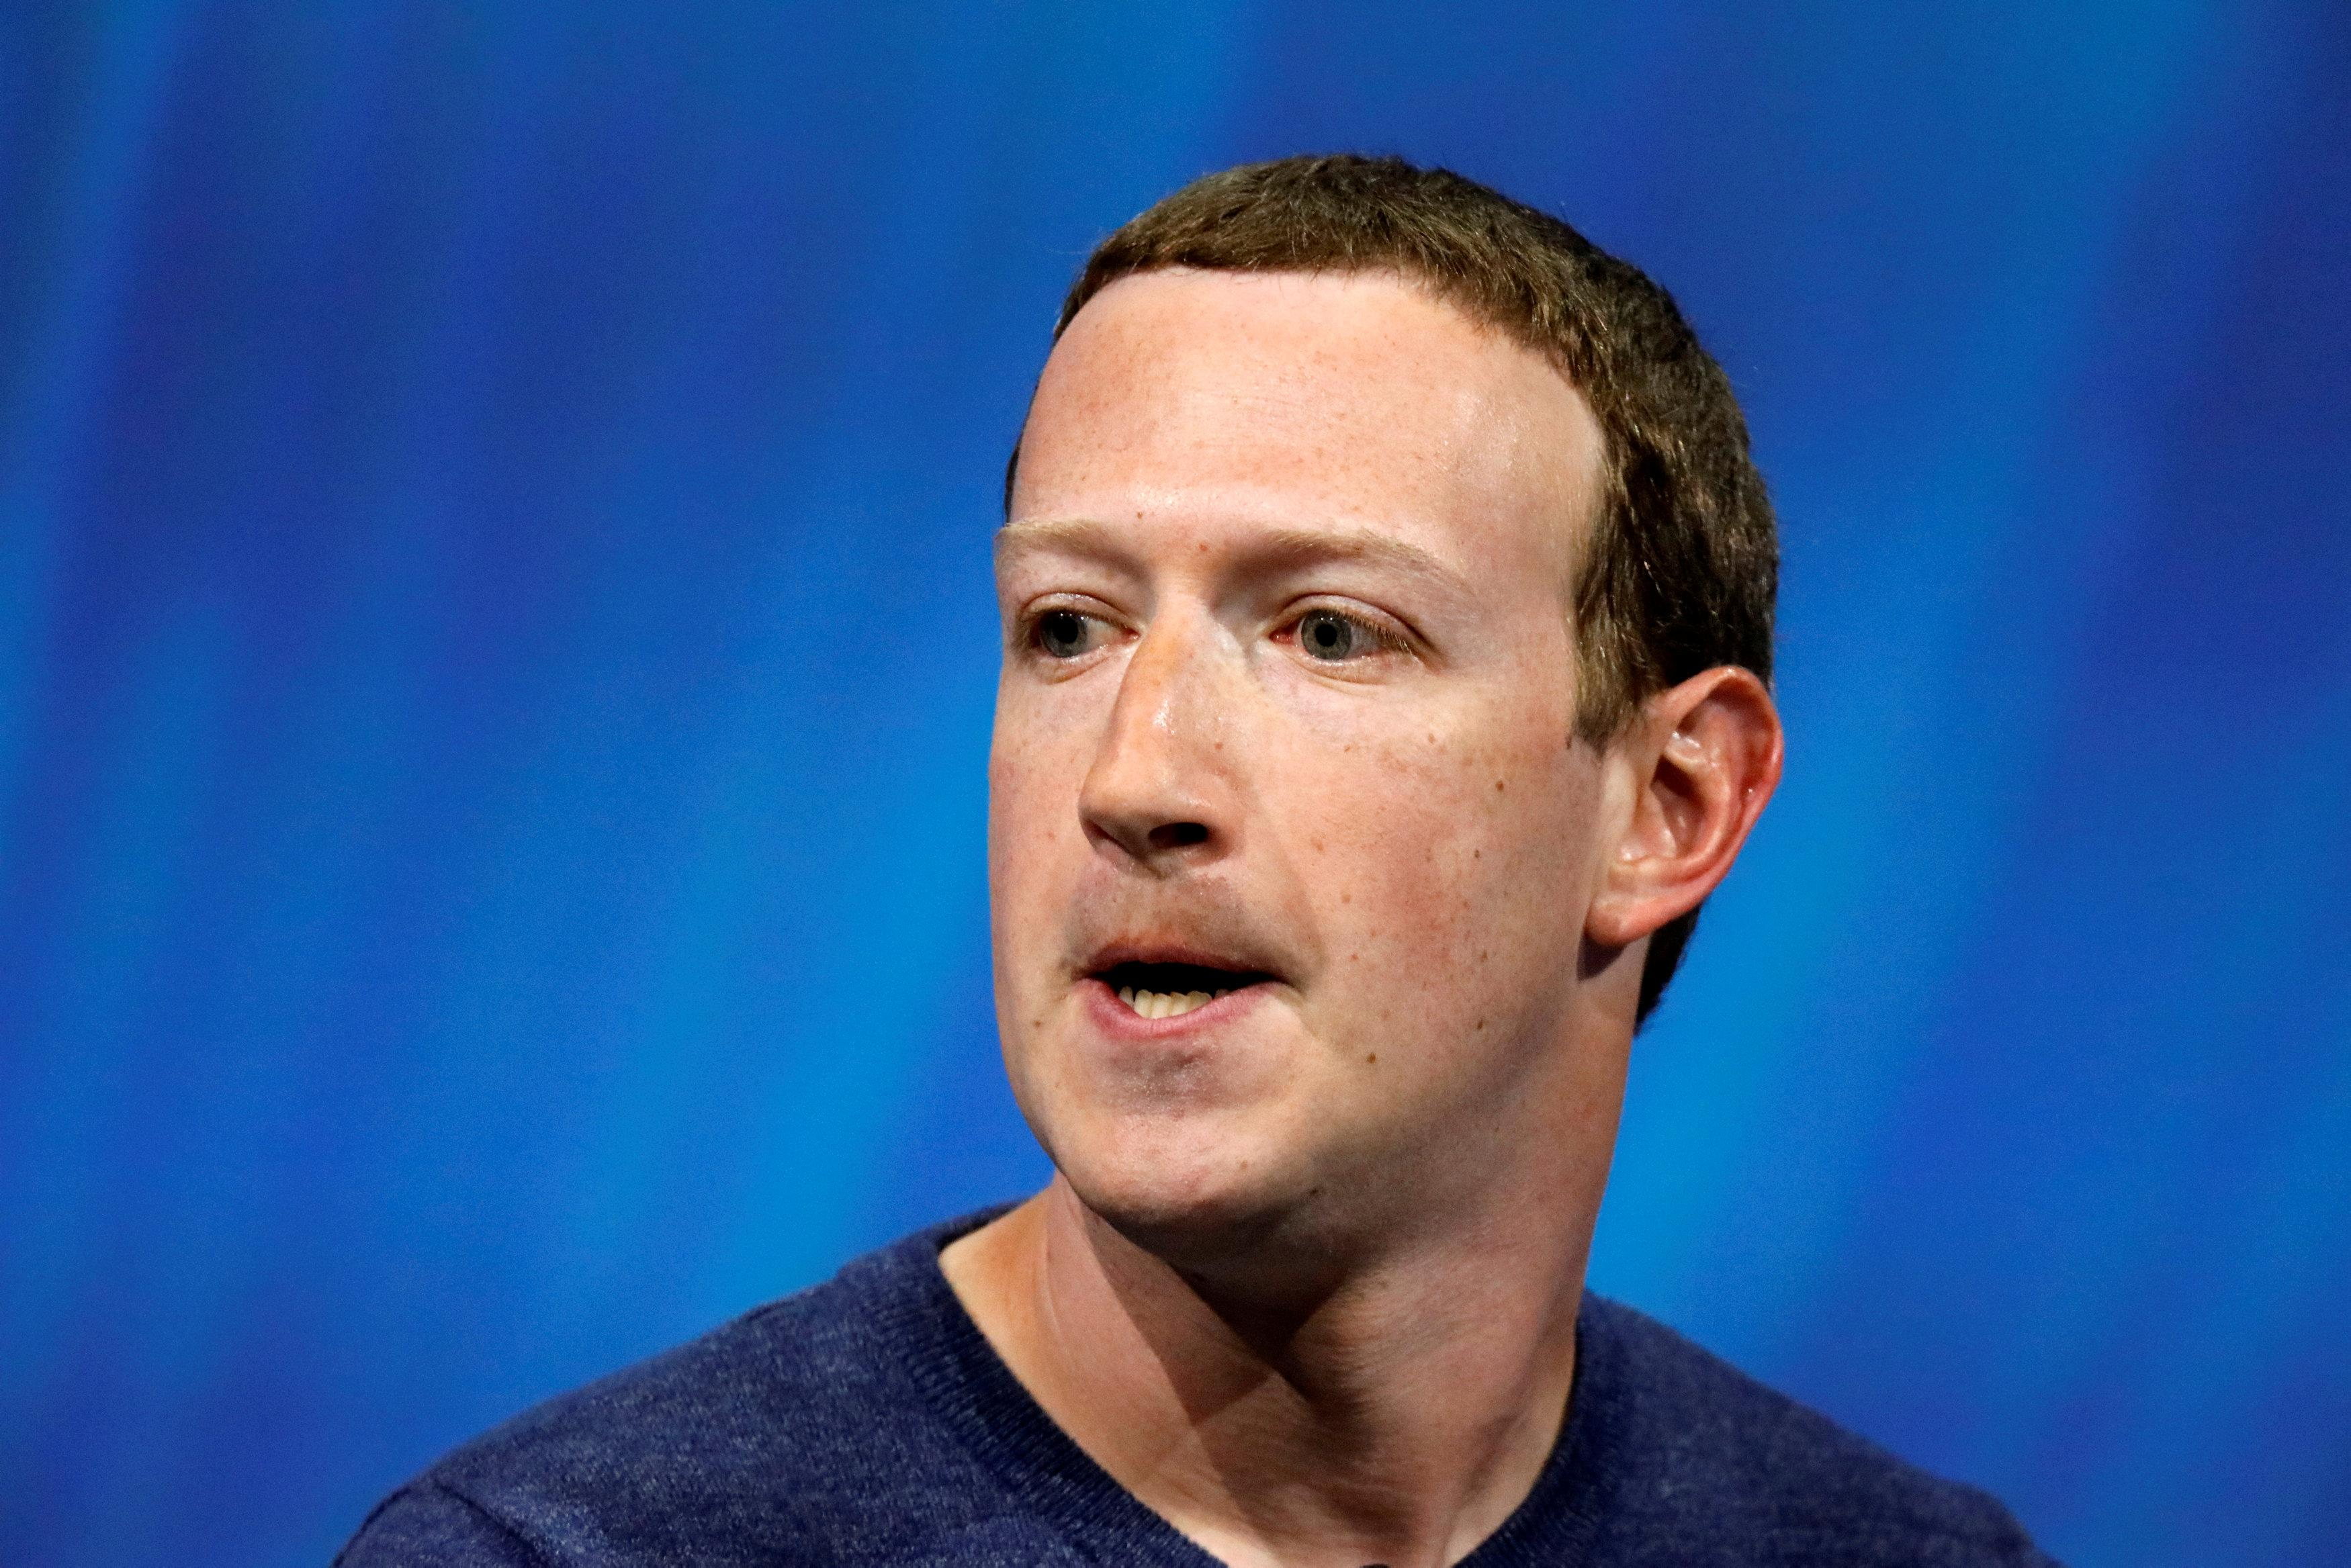 Facebook's woes 'deeper than a 1-day sell-off,' NYU professor says